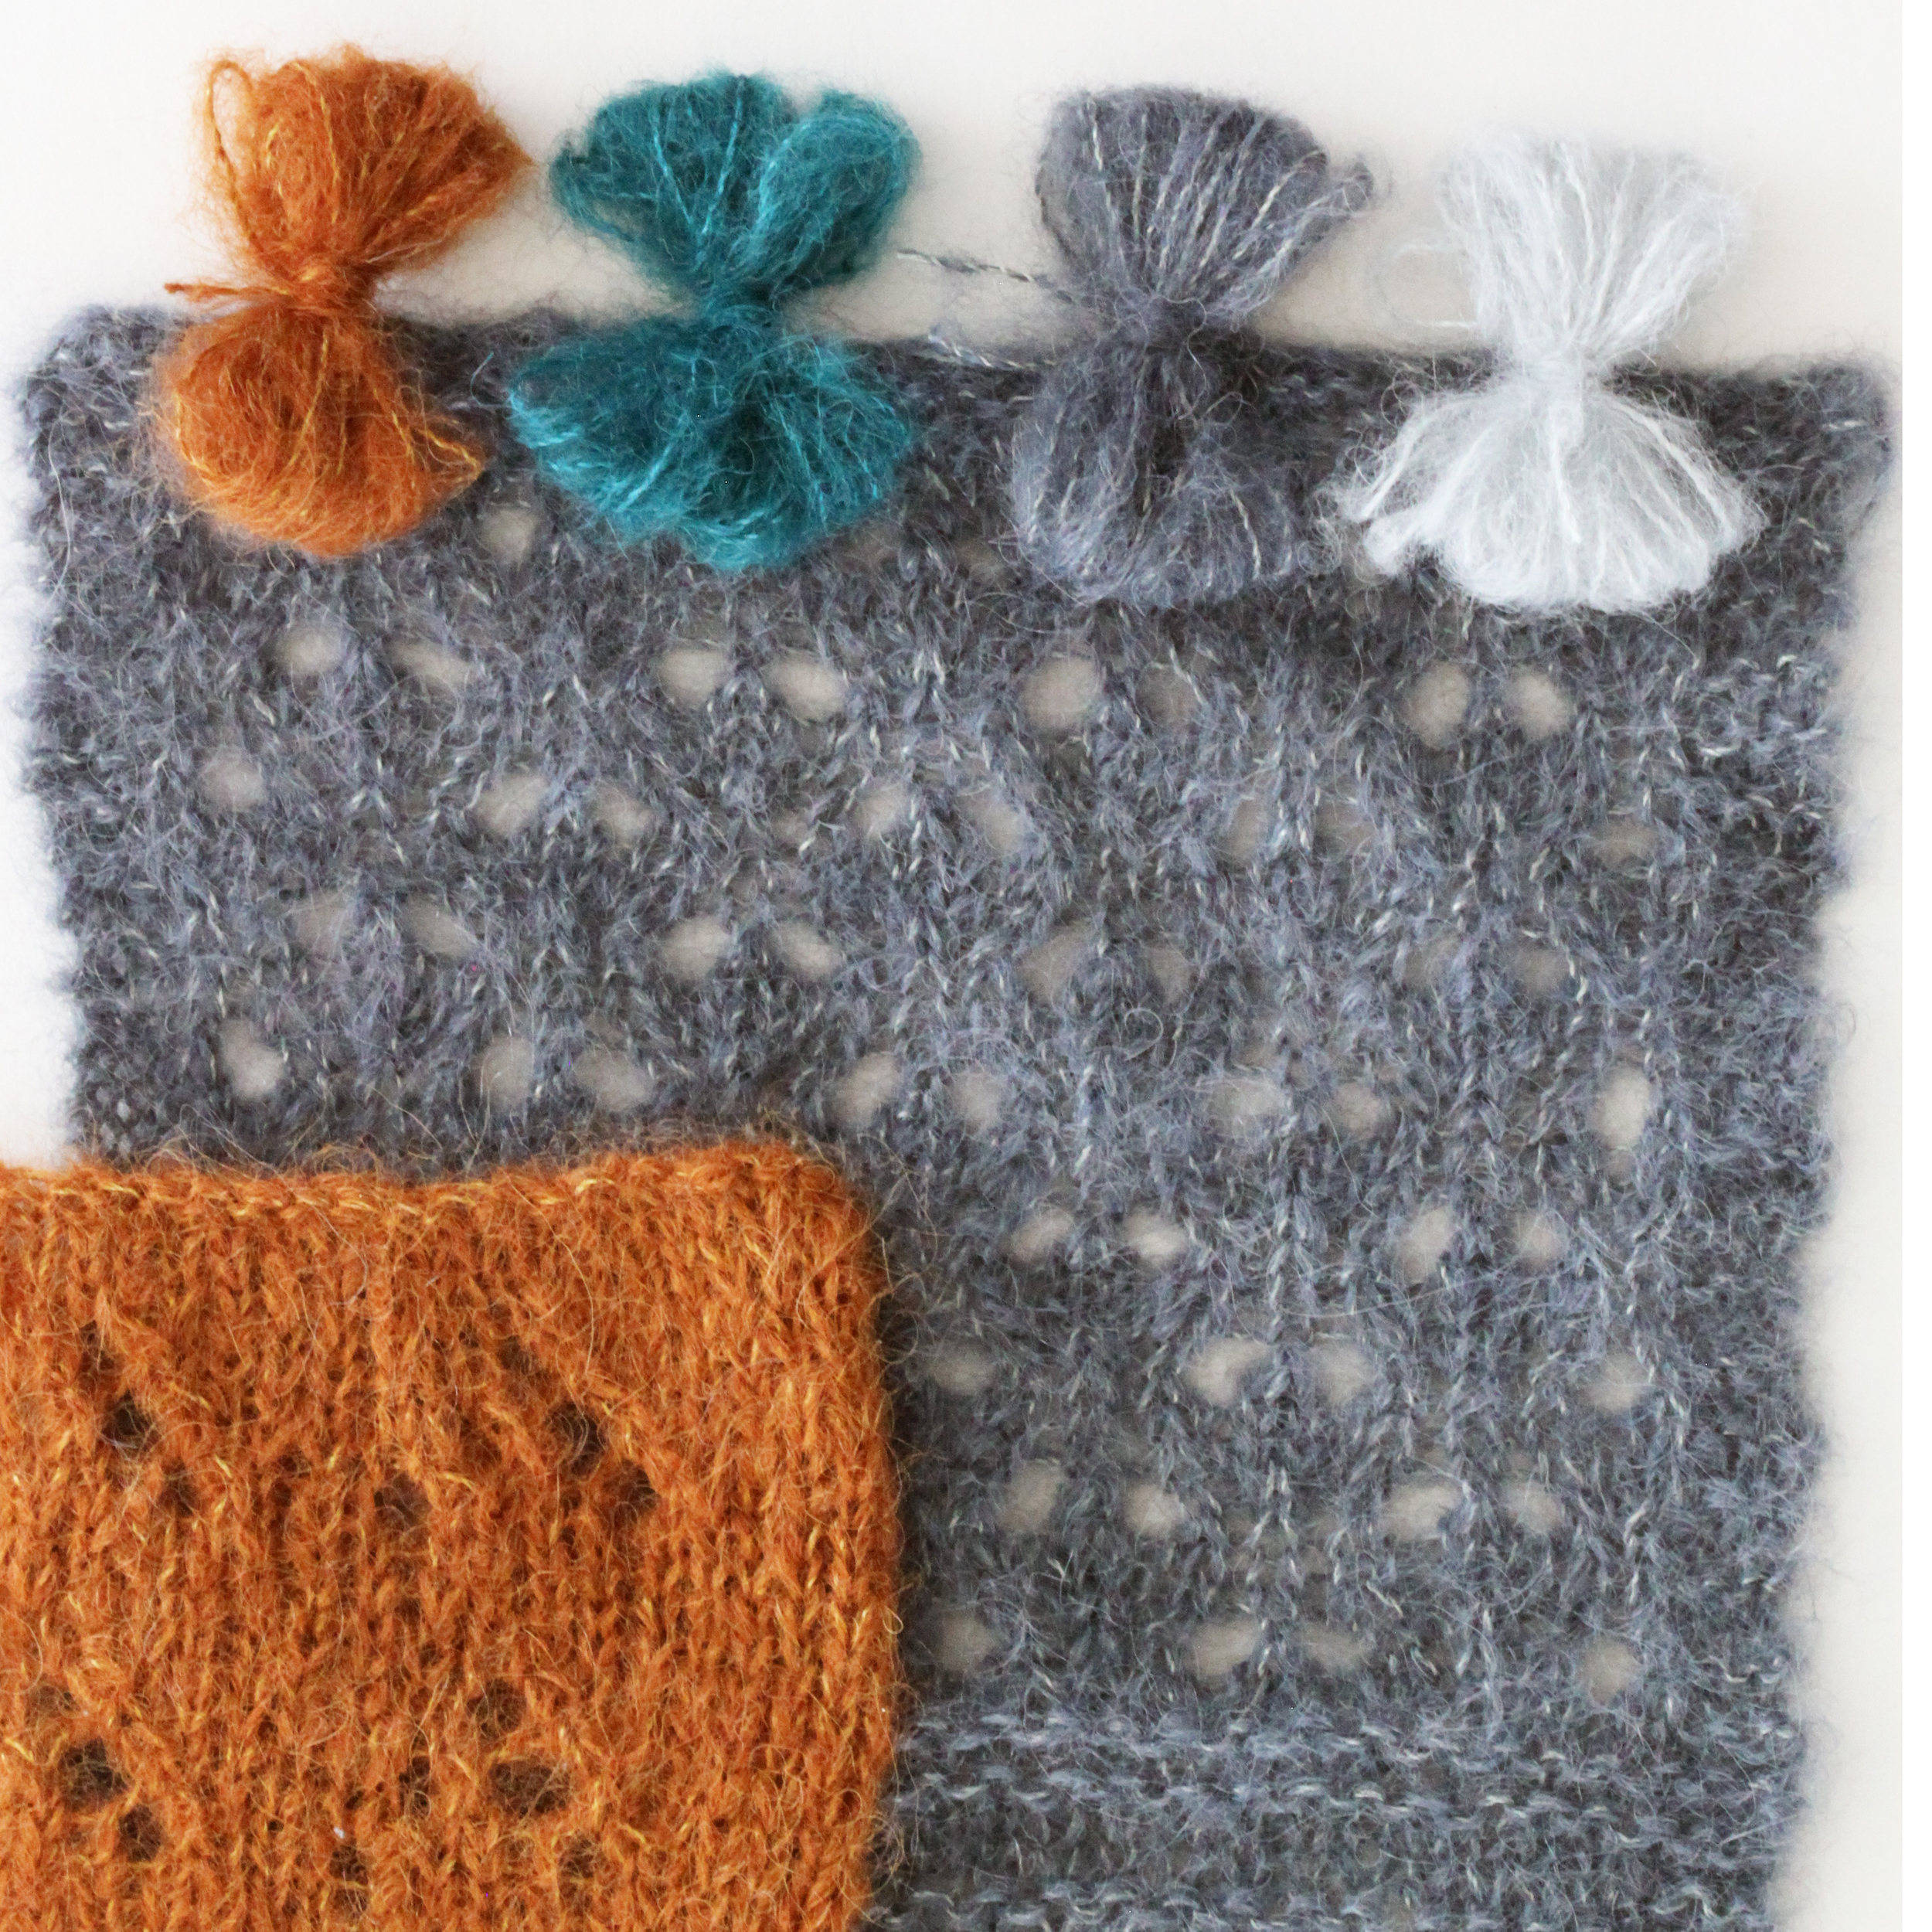 Yarn butterflies shown in (left to right): #902/Rust, #904/Teal, #913/Slate and #911/Silver Swatches shown in: #902/Rust and #913/Slate